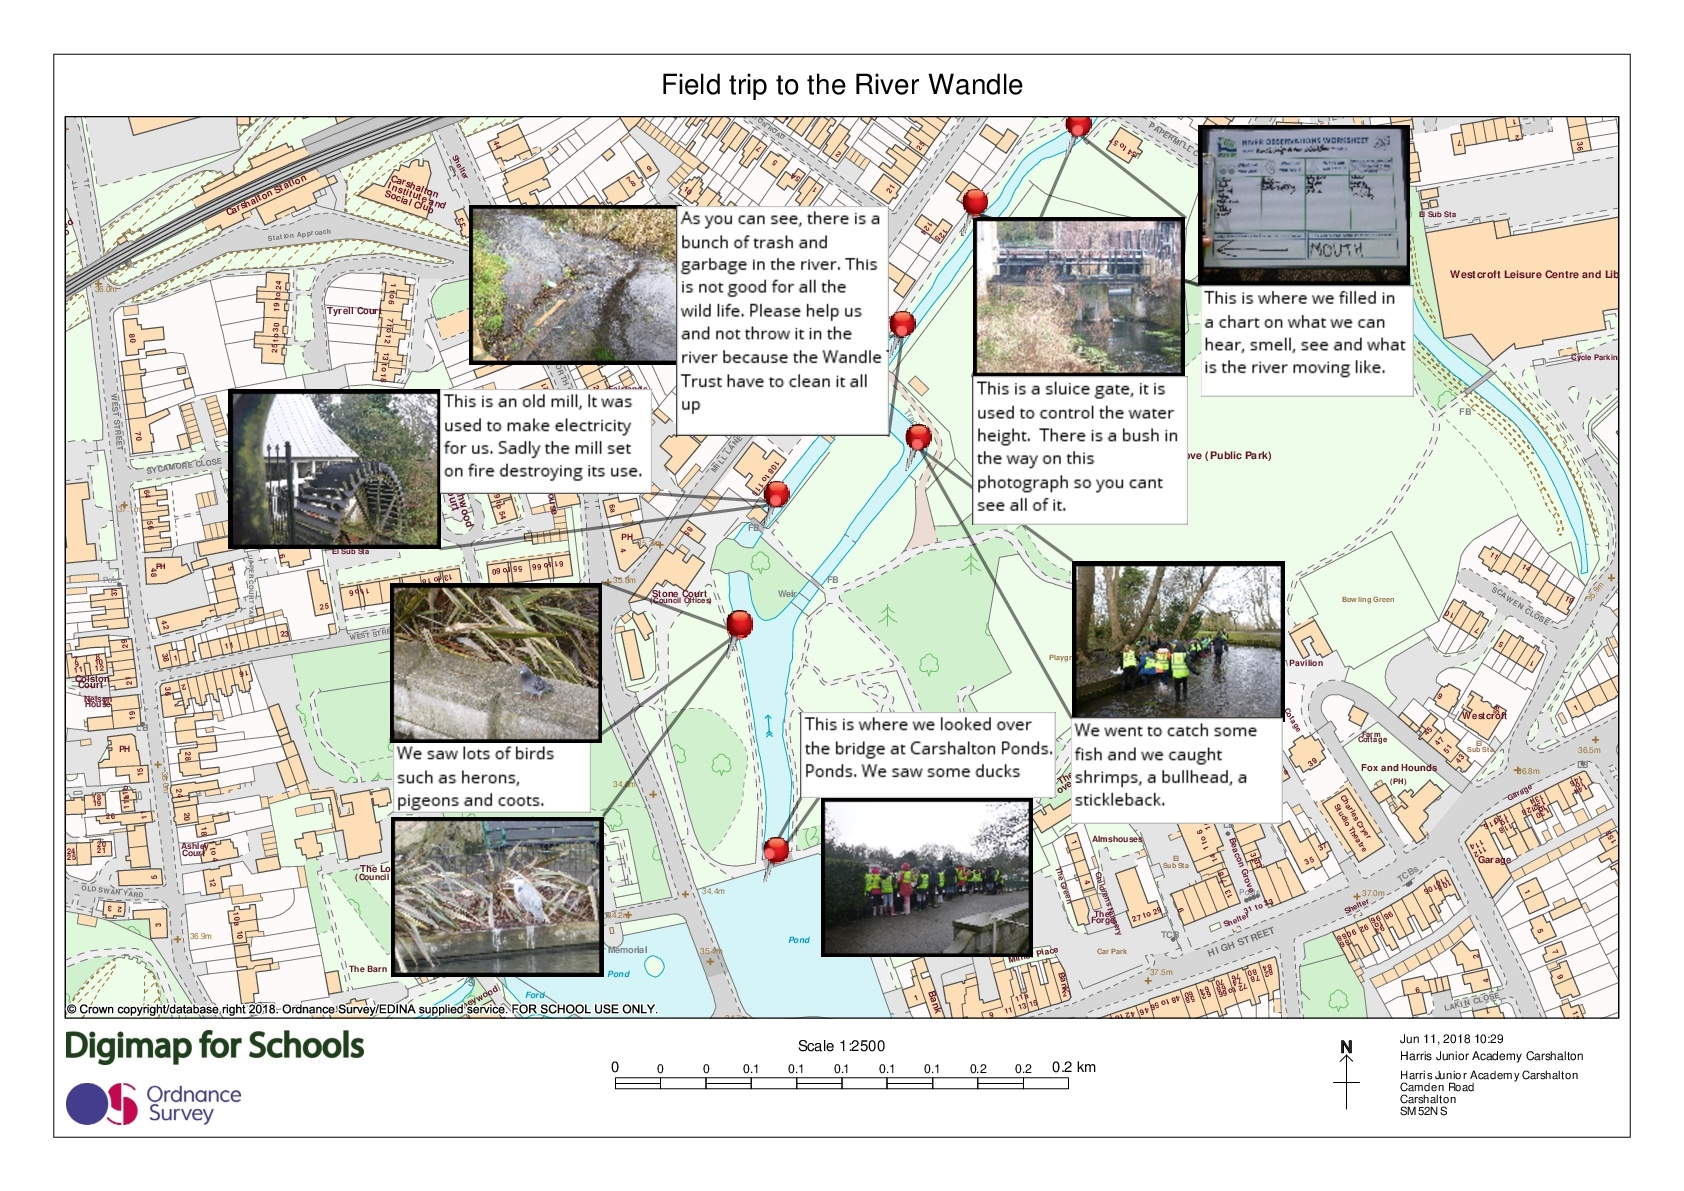 Harris Junior Academy Carshalton, Year 4. Follow up work completed using Digimap to record observations and activities.